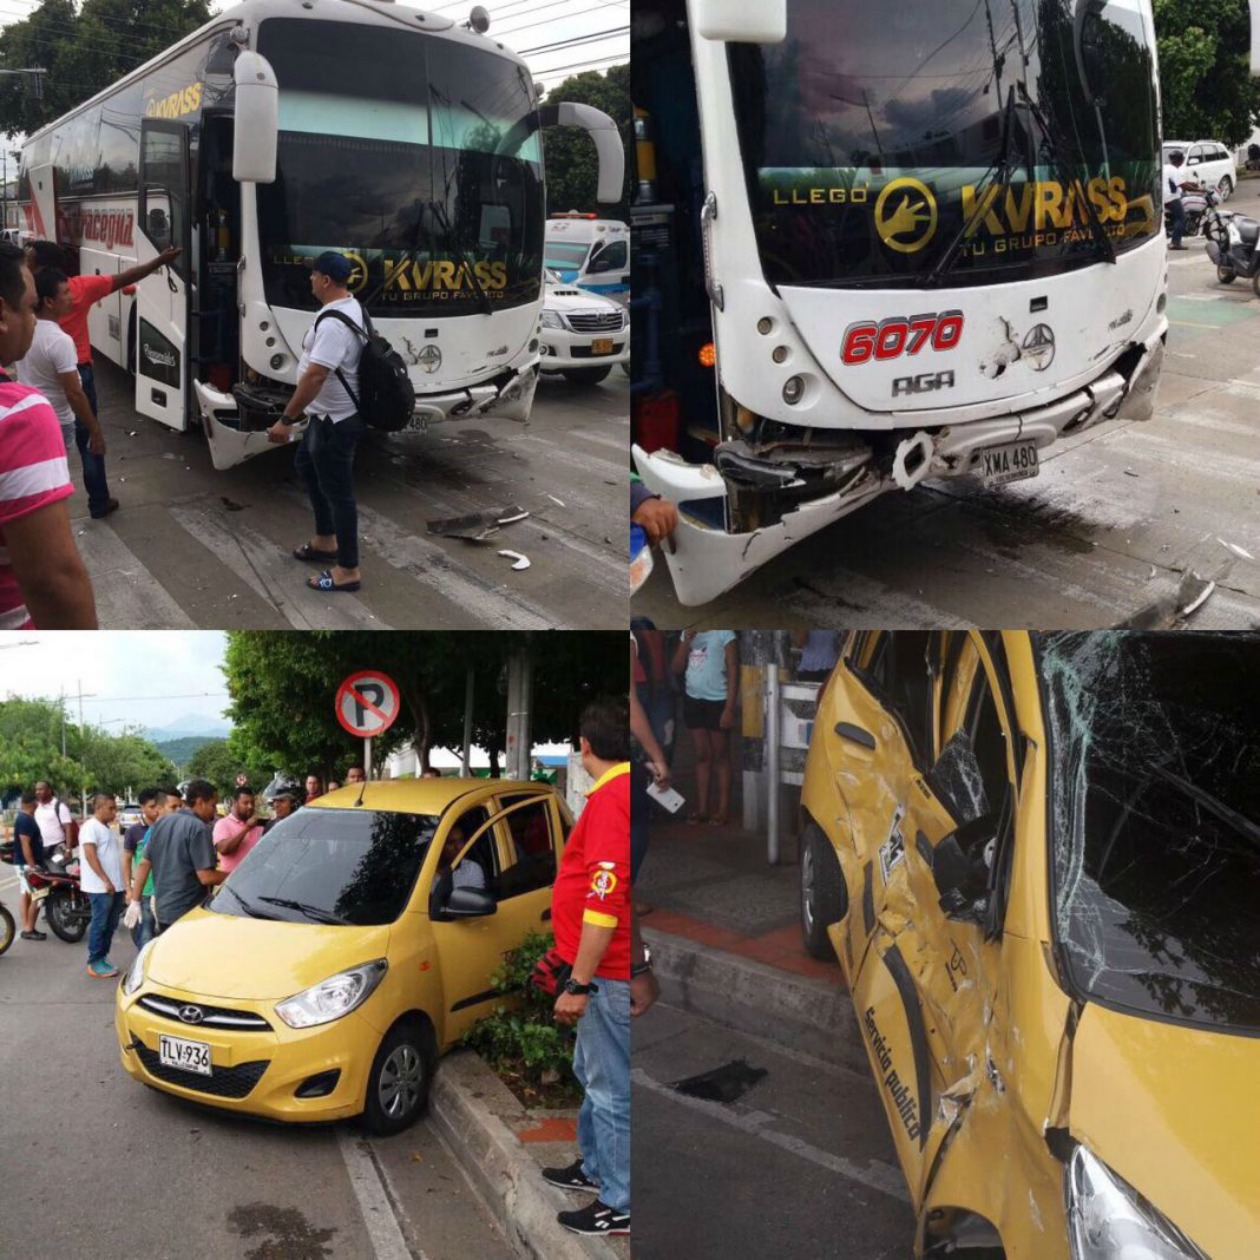 Accidente del grupo Kvrass en Valledupar